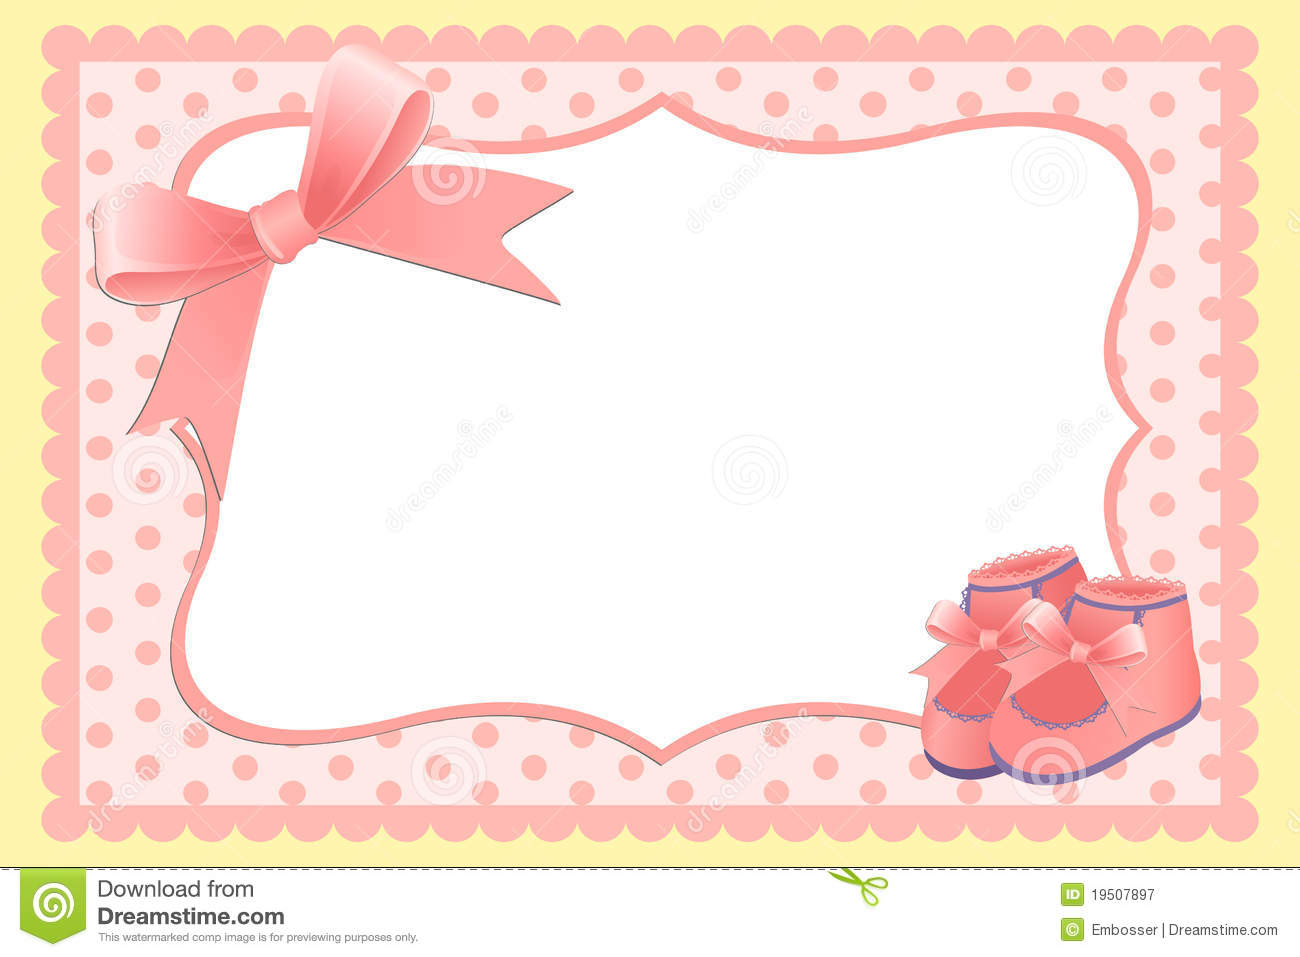 cute template for babys arrival announcement card or photo frame